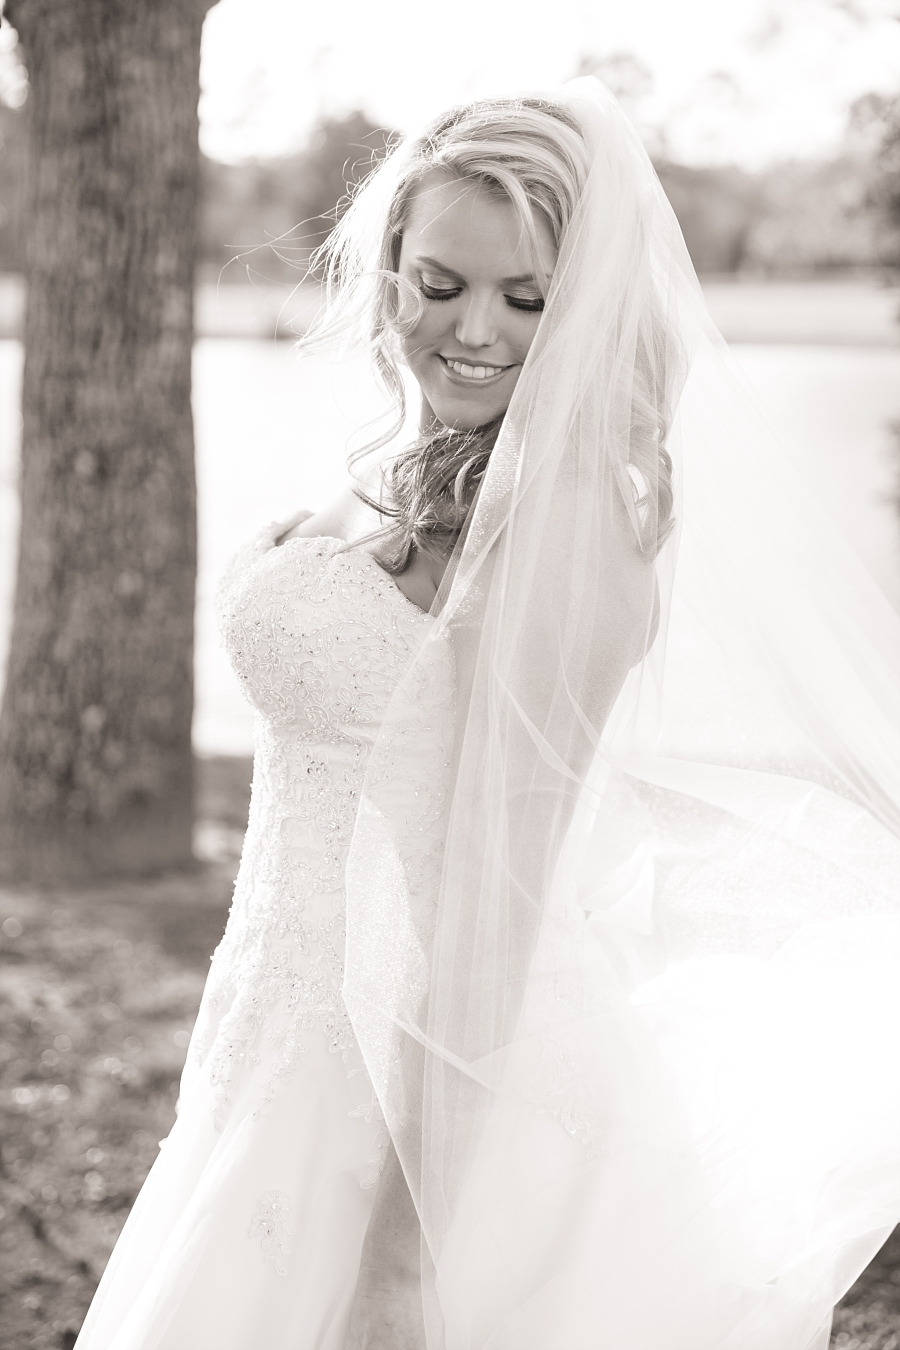 Stacy-Anderson-Photography-Balmorhea-Tomball-Wedding-Photographer_0012.jpg